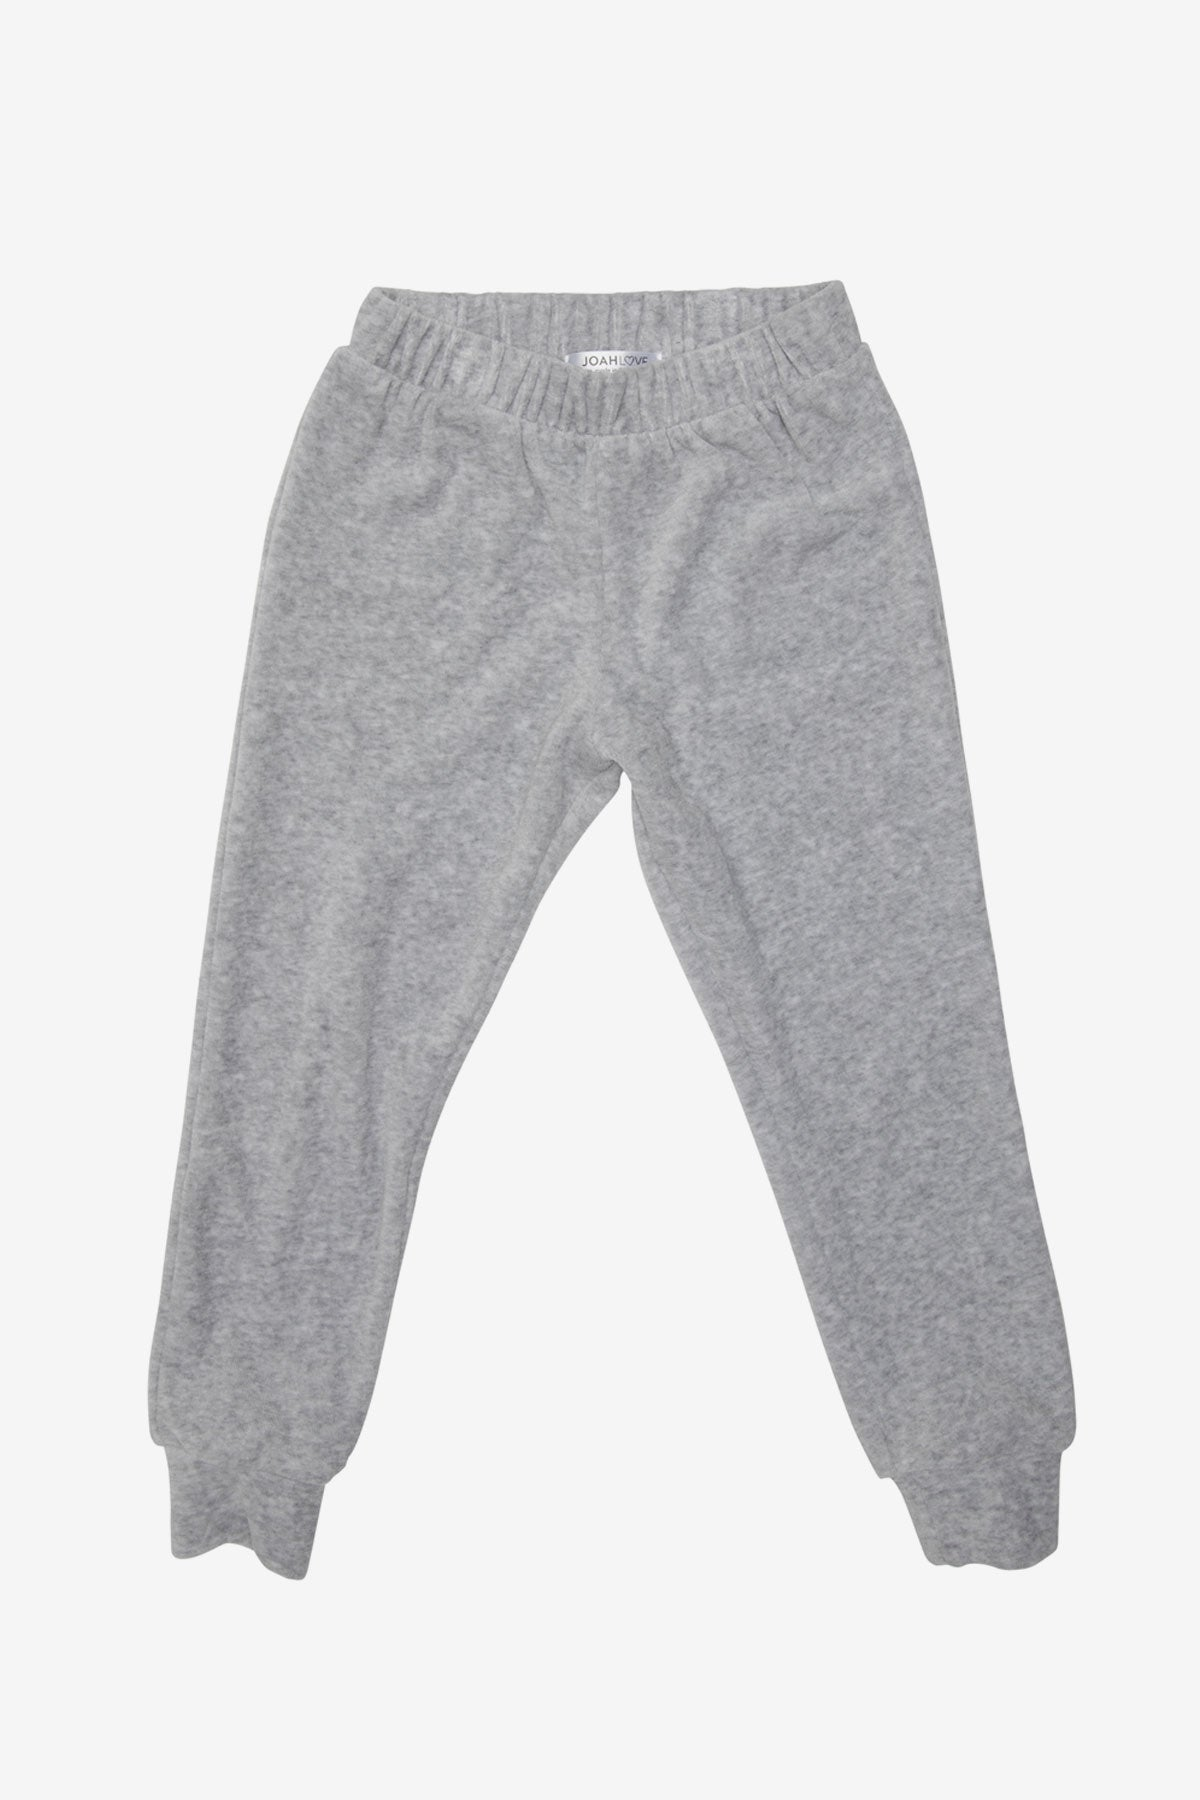 Joah Love Andie Velour Kids Sweatpants